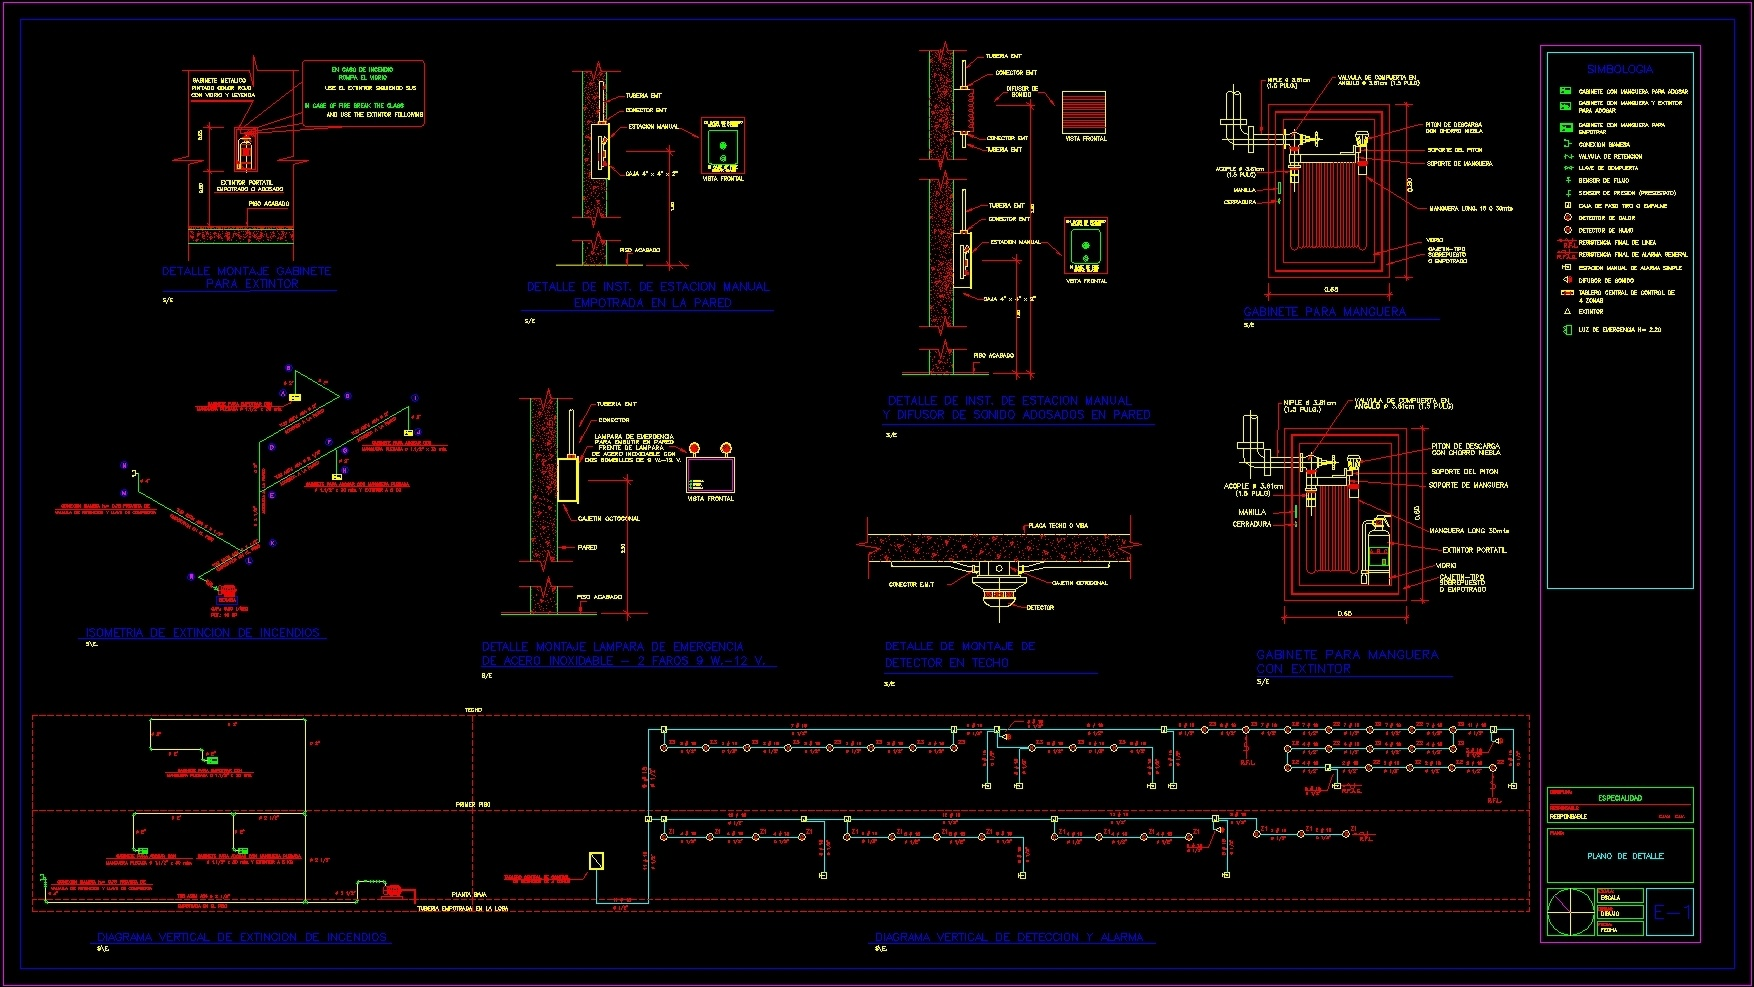 Fire Protection System DWG Block for AutoCAD • DesignsCAD